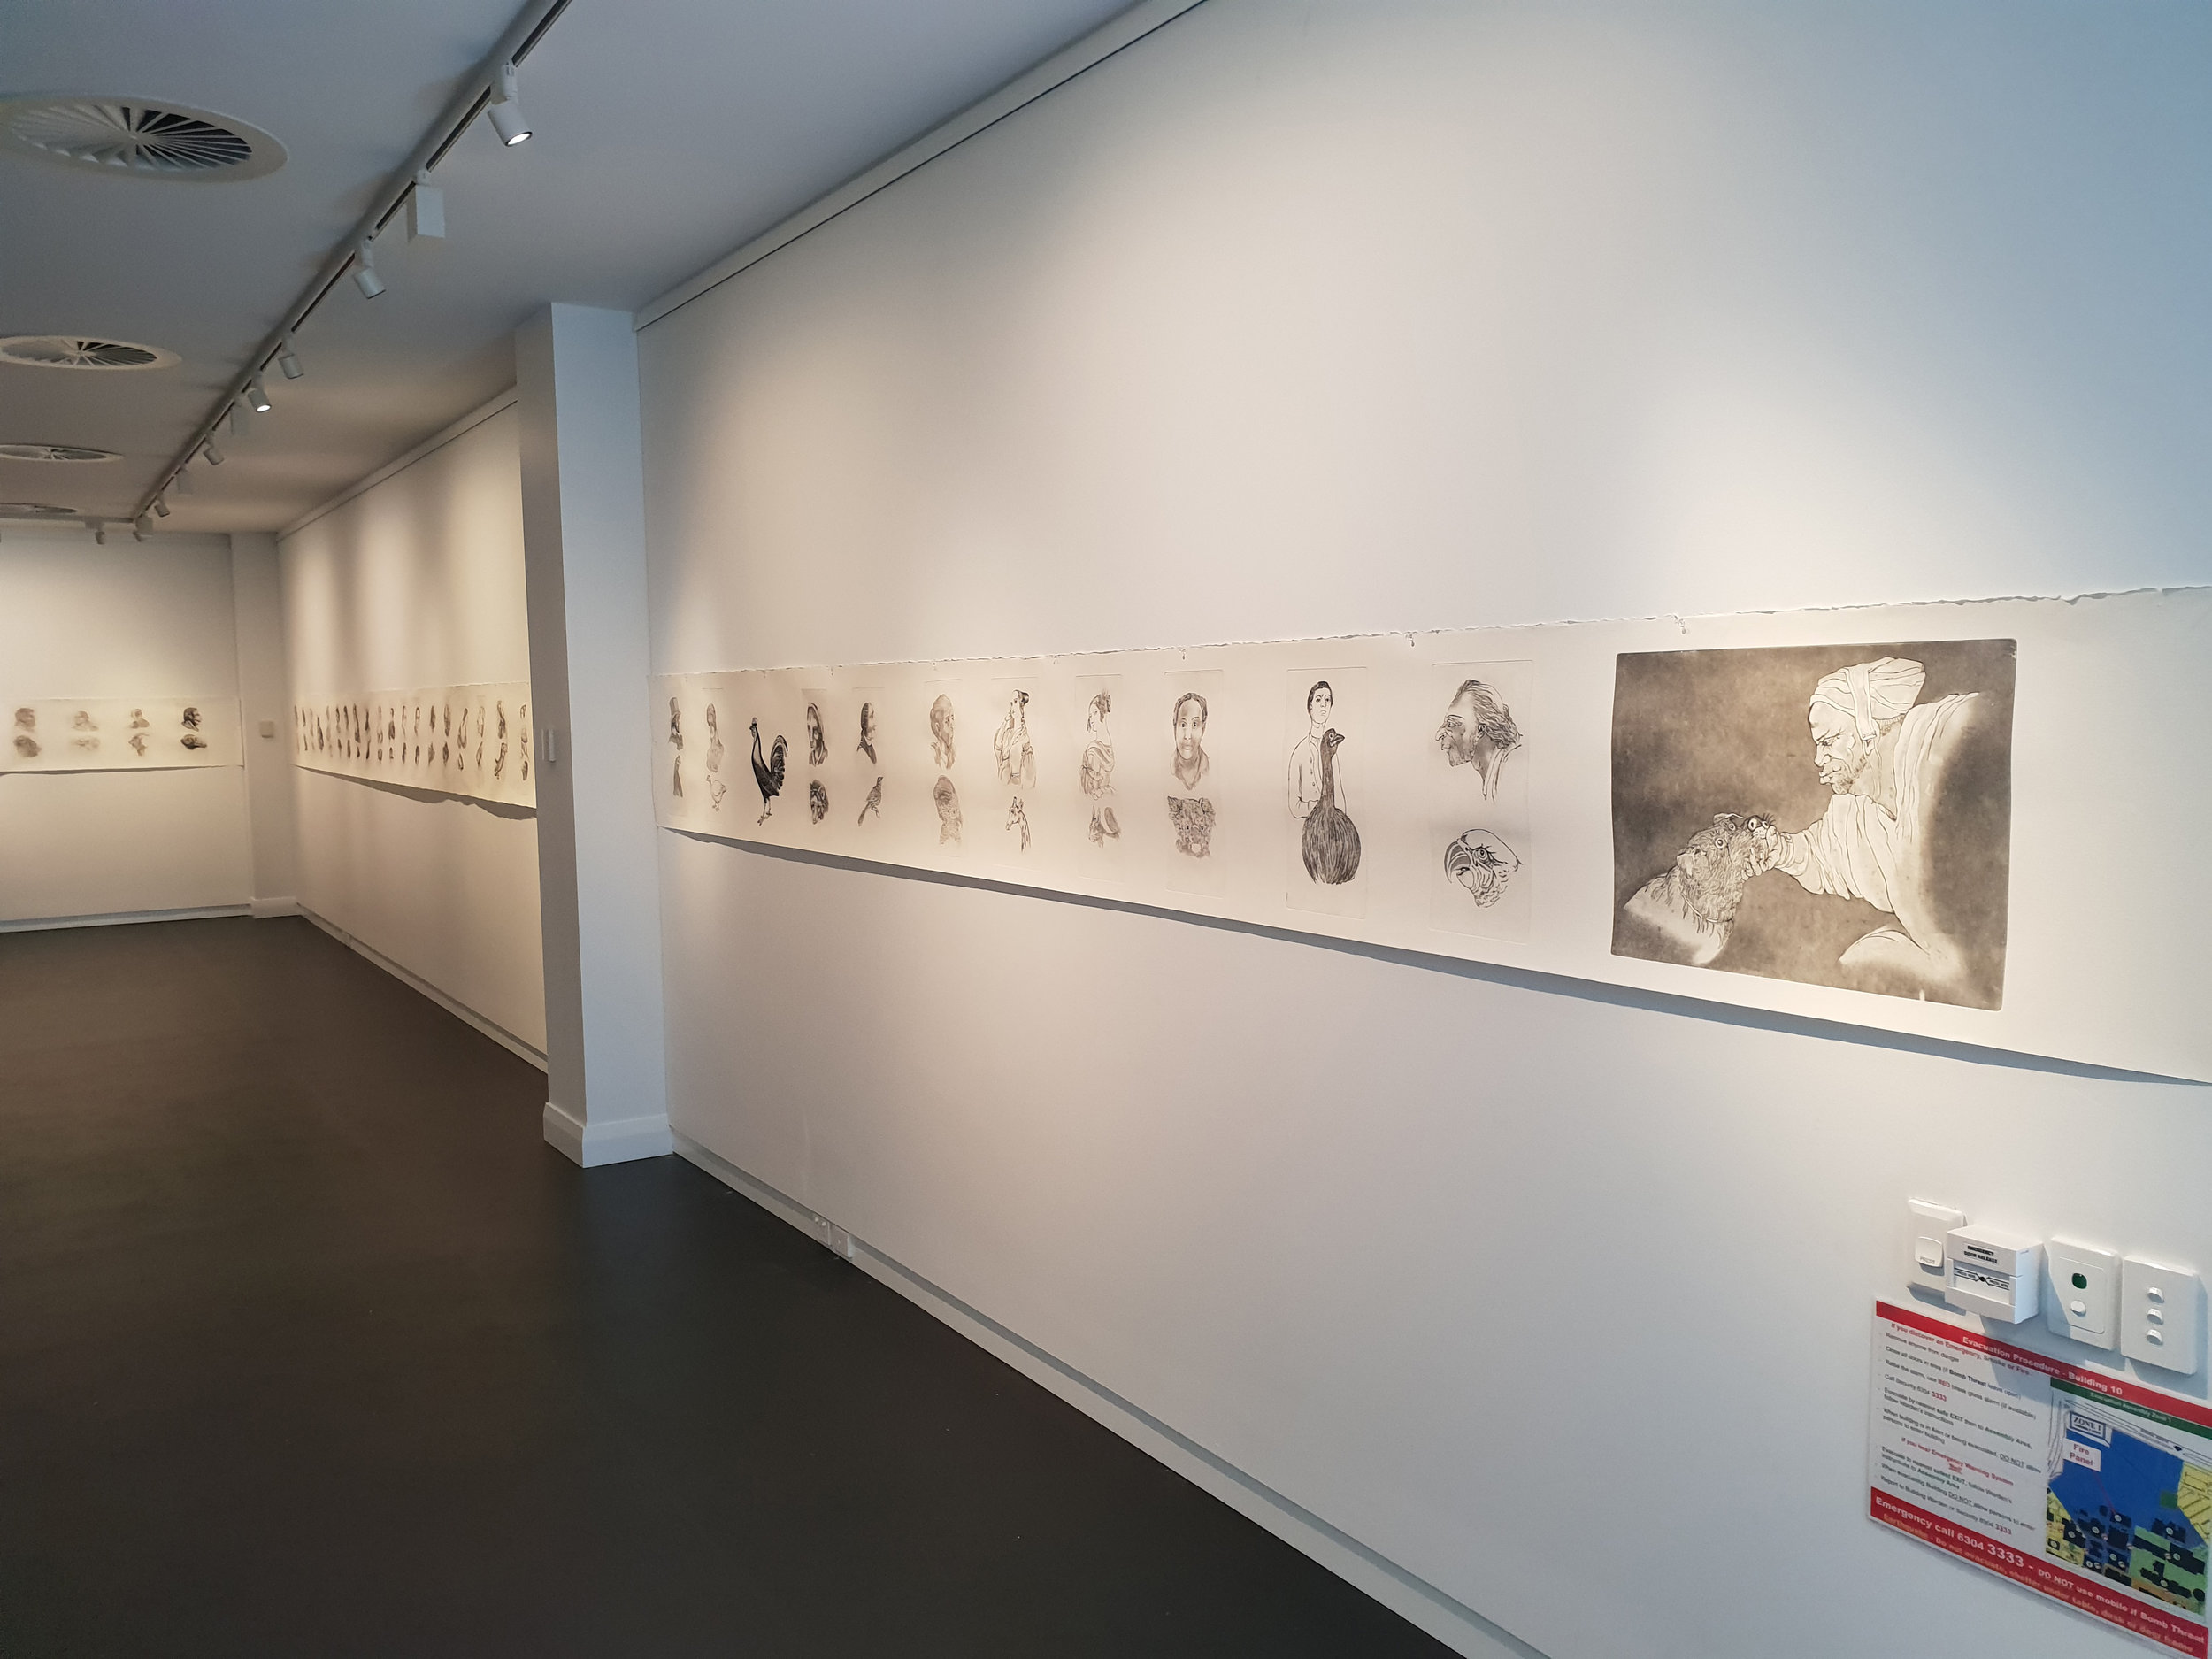 Gallery 25, right entry wall